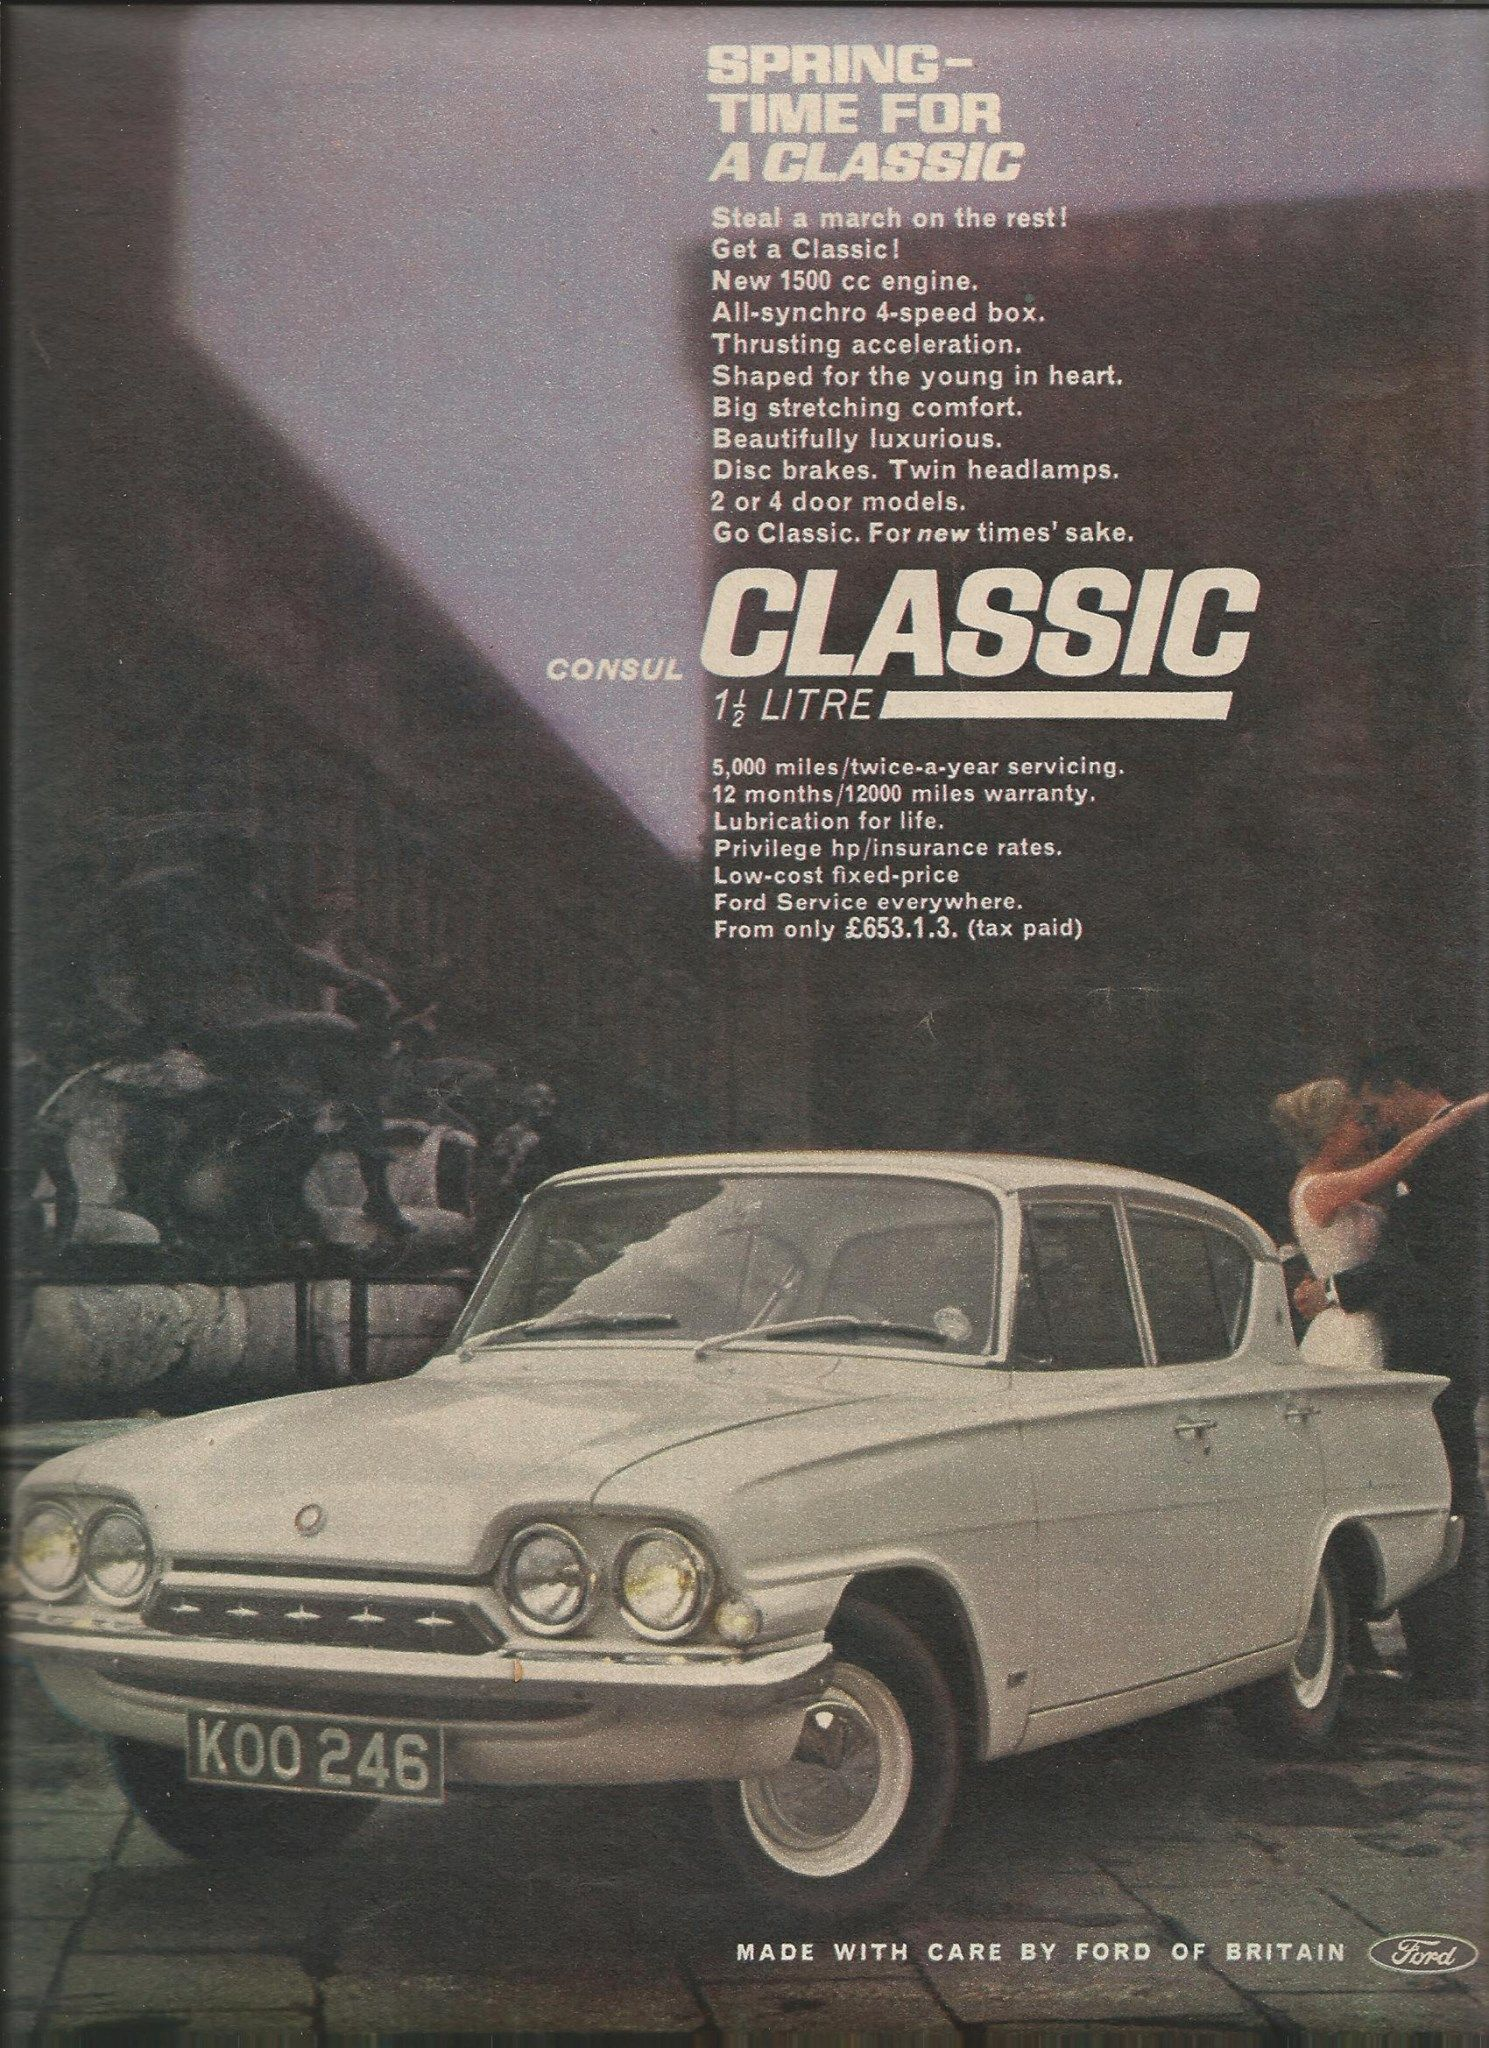 Pin by David Roberts on Ad\'s   Pinterest   Cars, Car posters and Ford